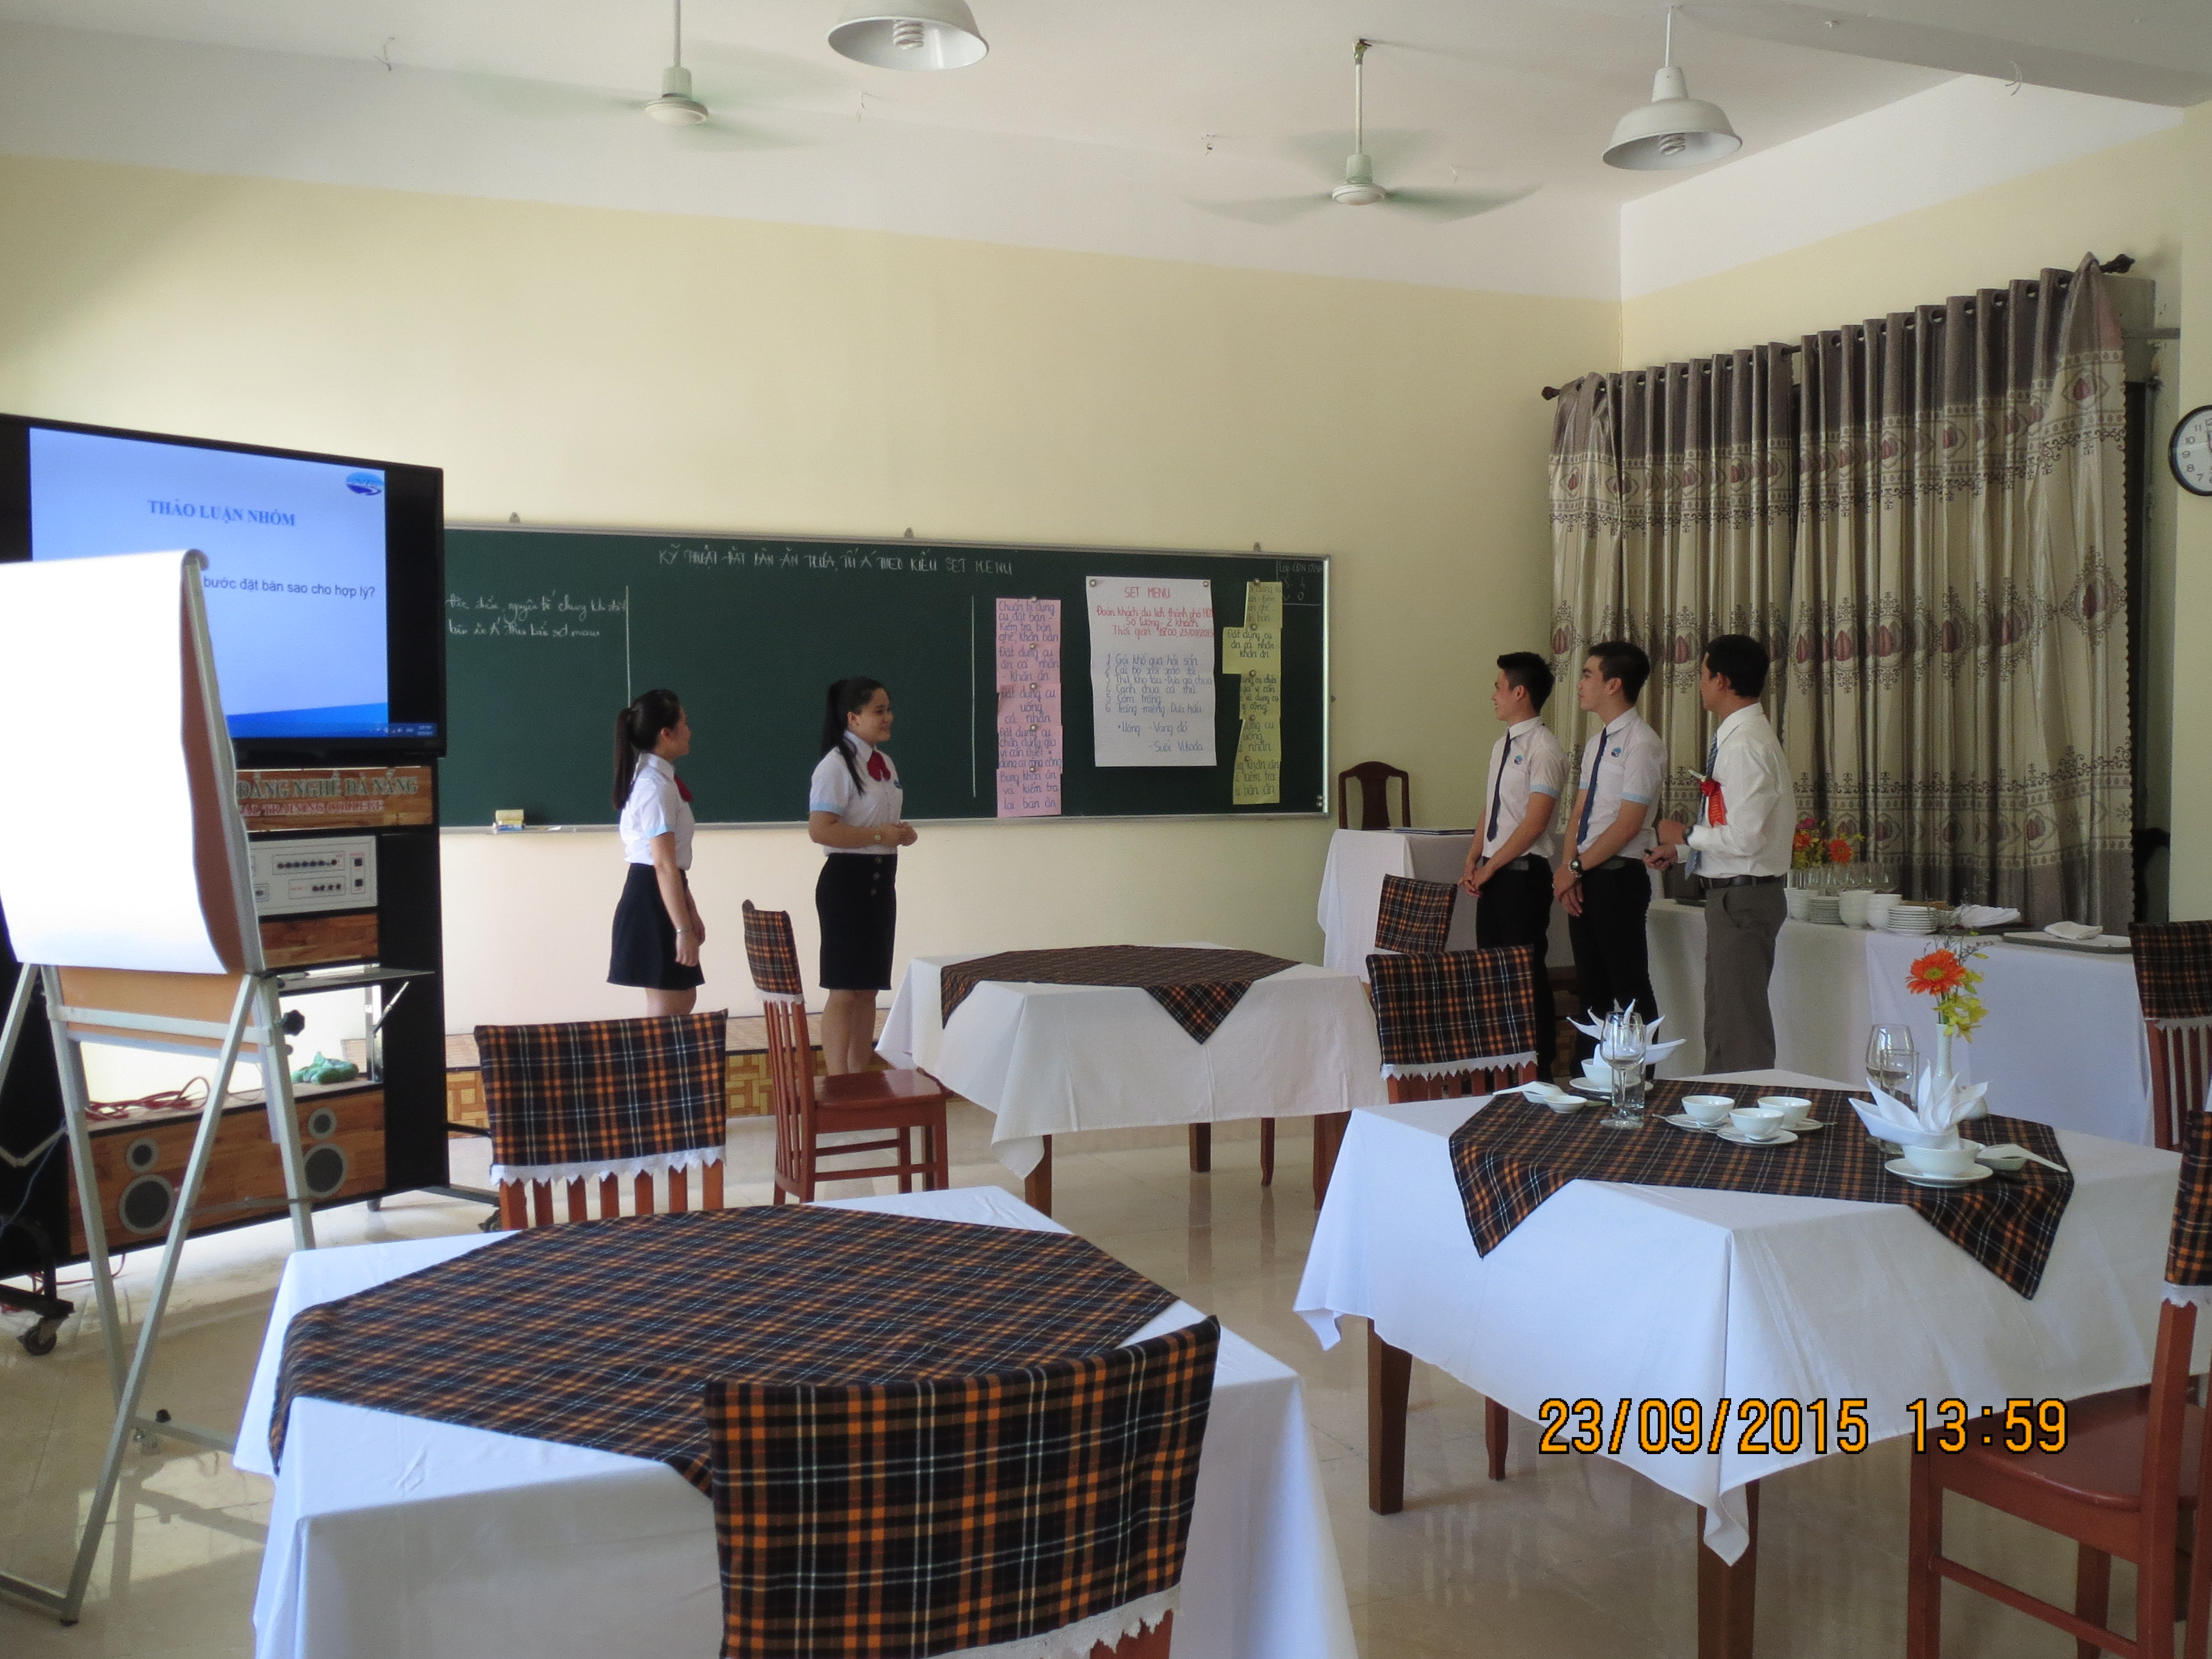 Presentation of lecture by sub-committee Restaurant - Hotel